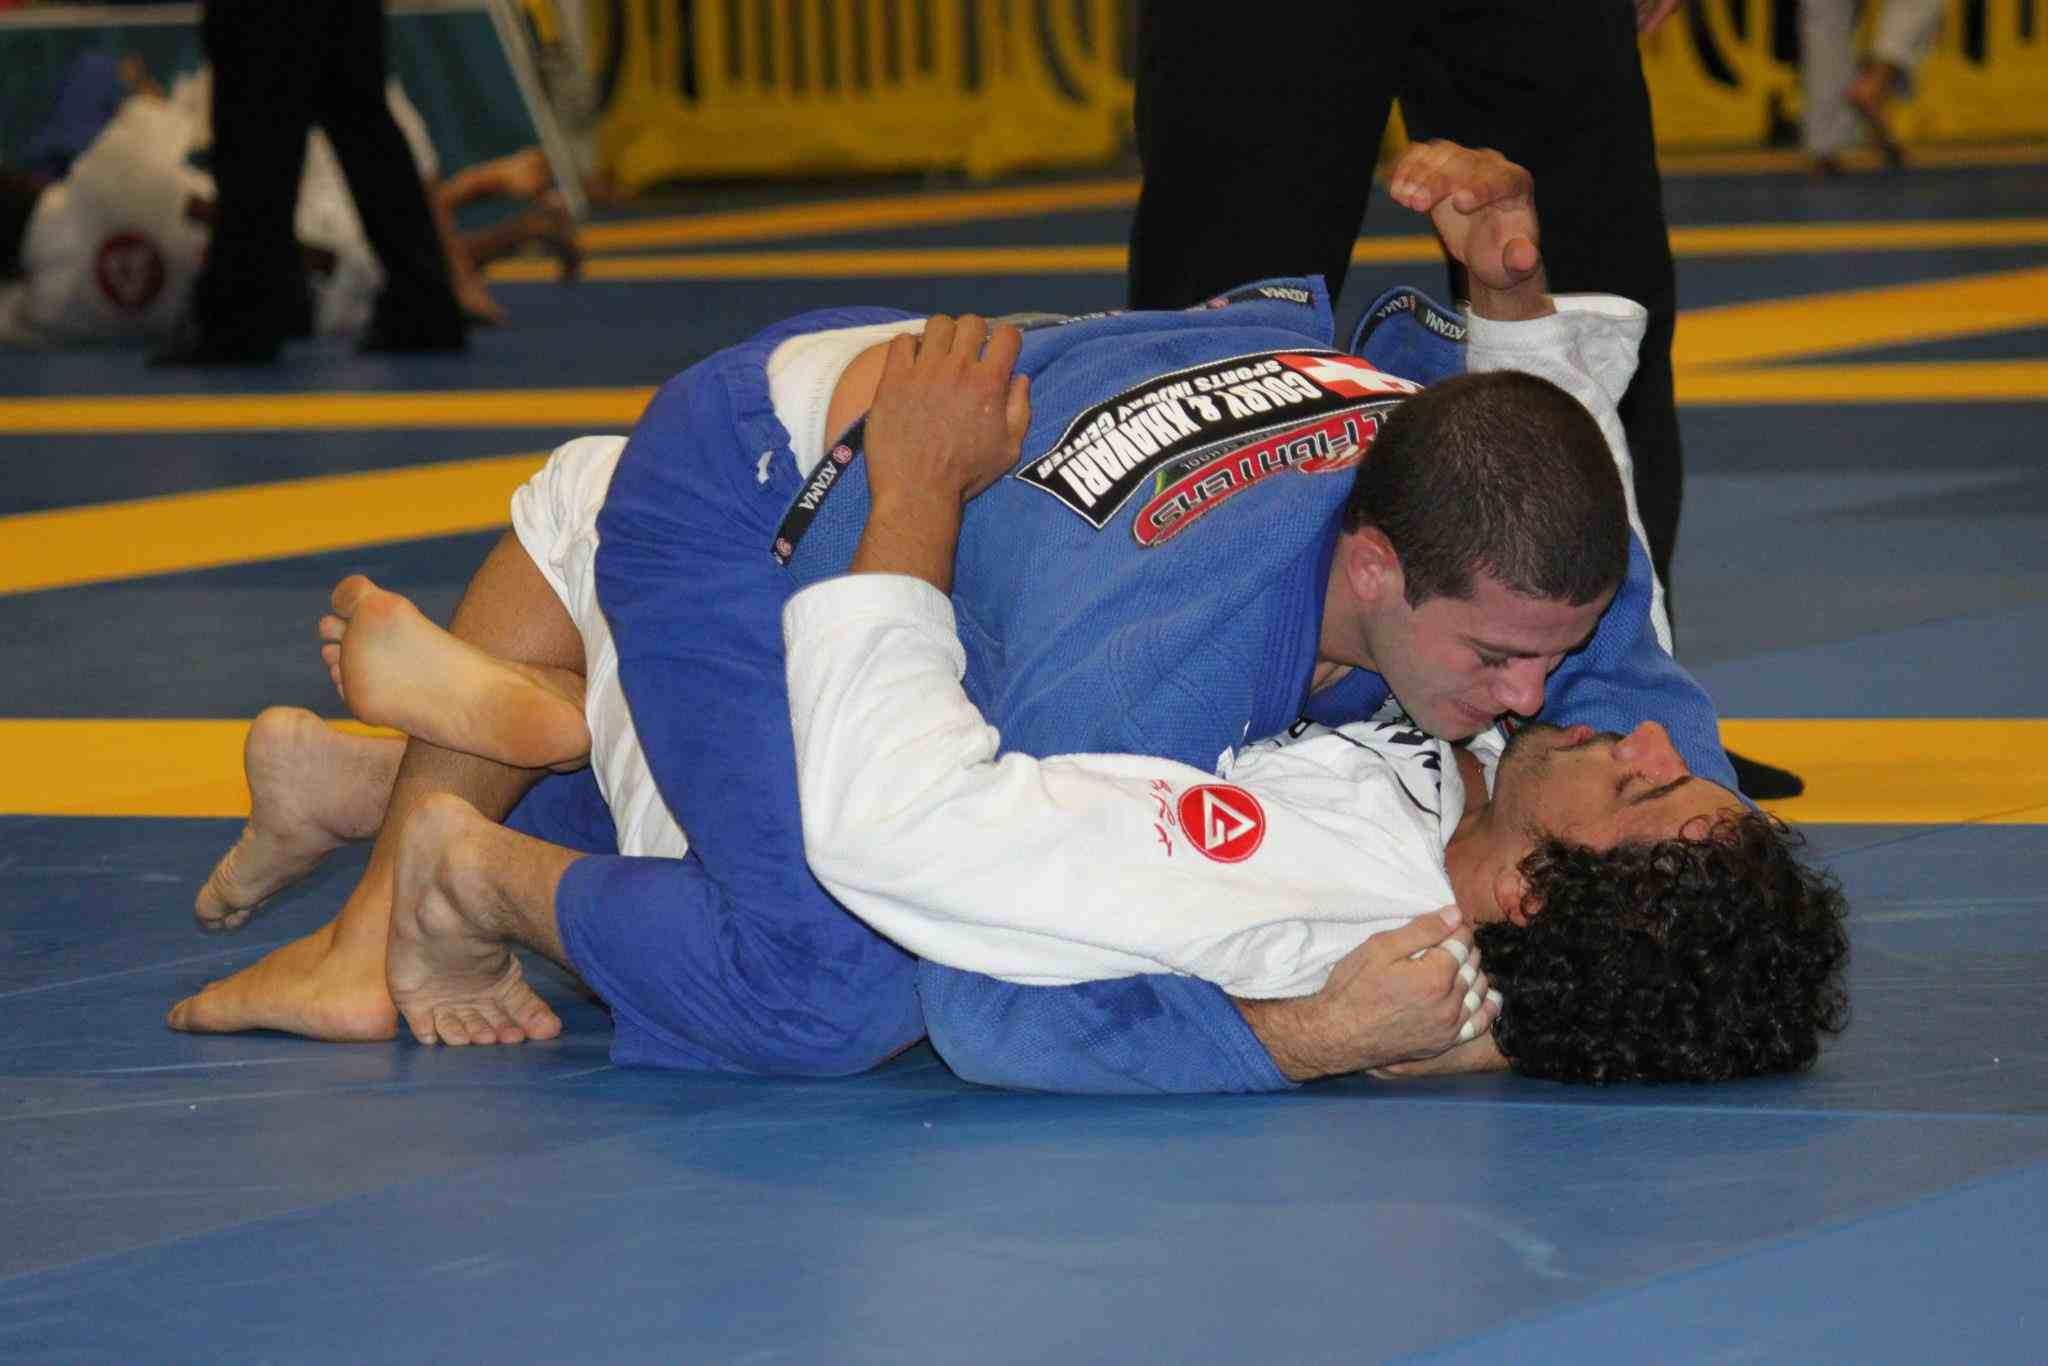 Tanquinho competing again at the Las Vegas Open